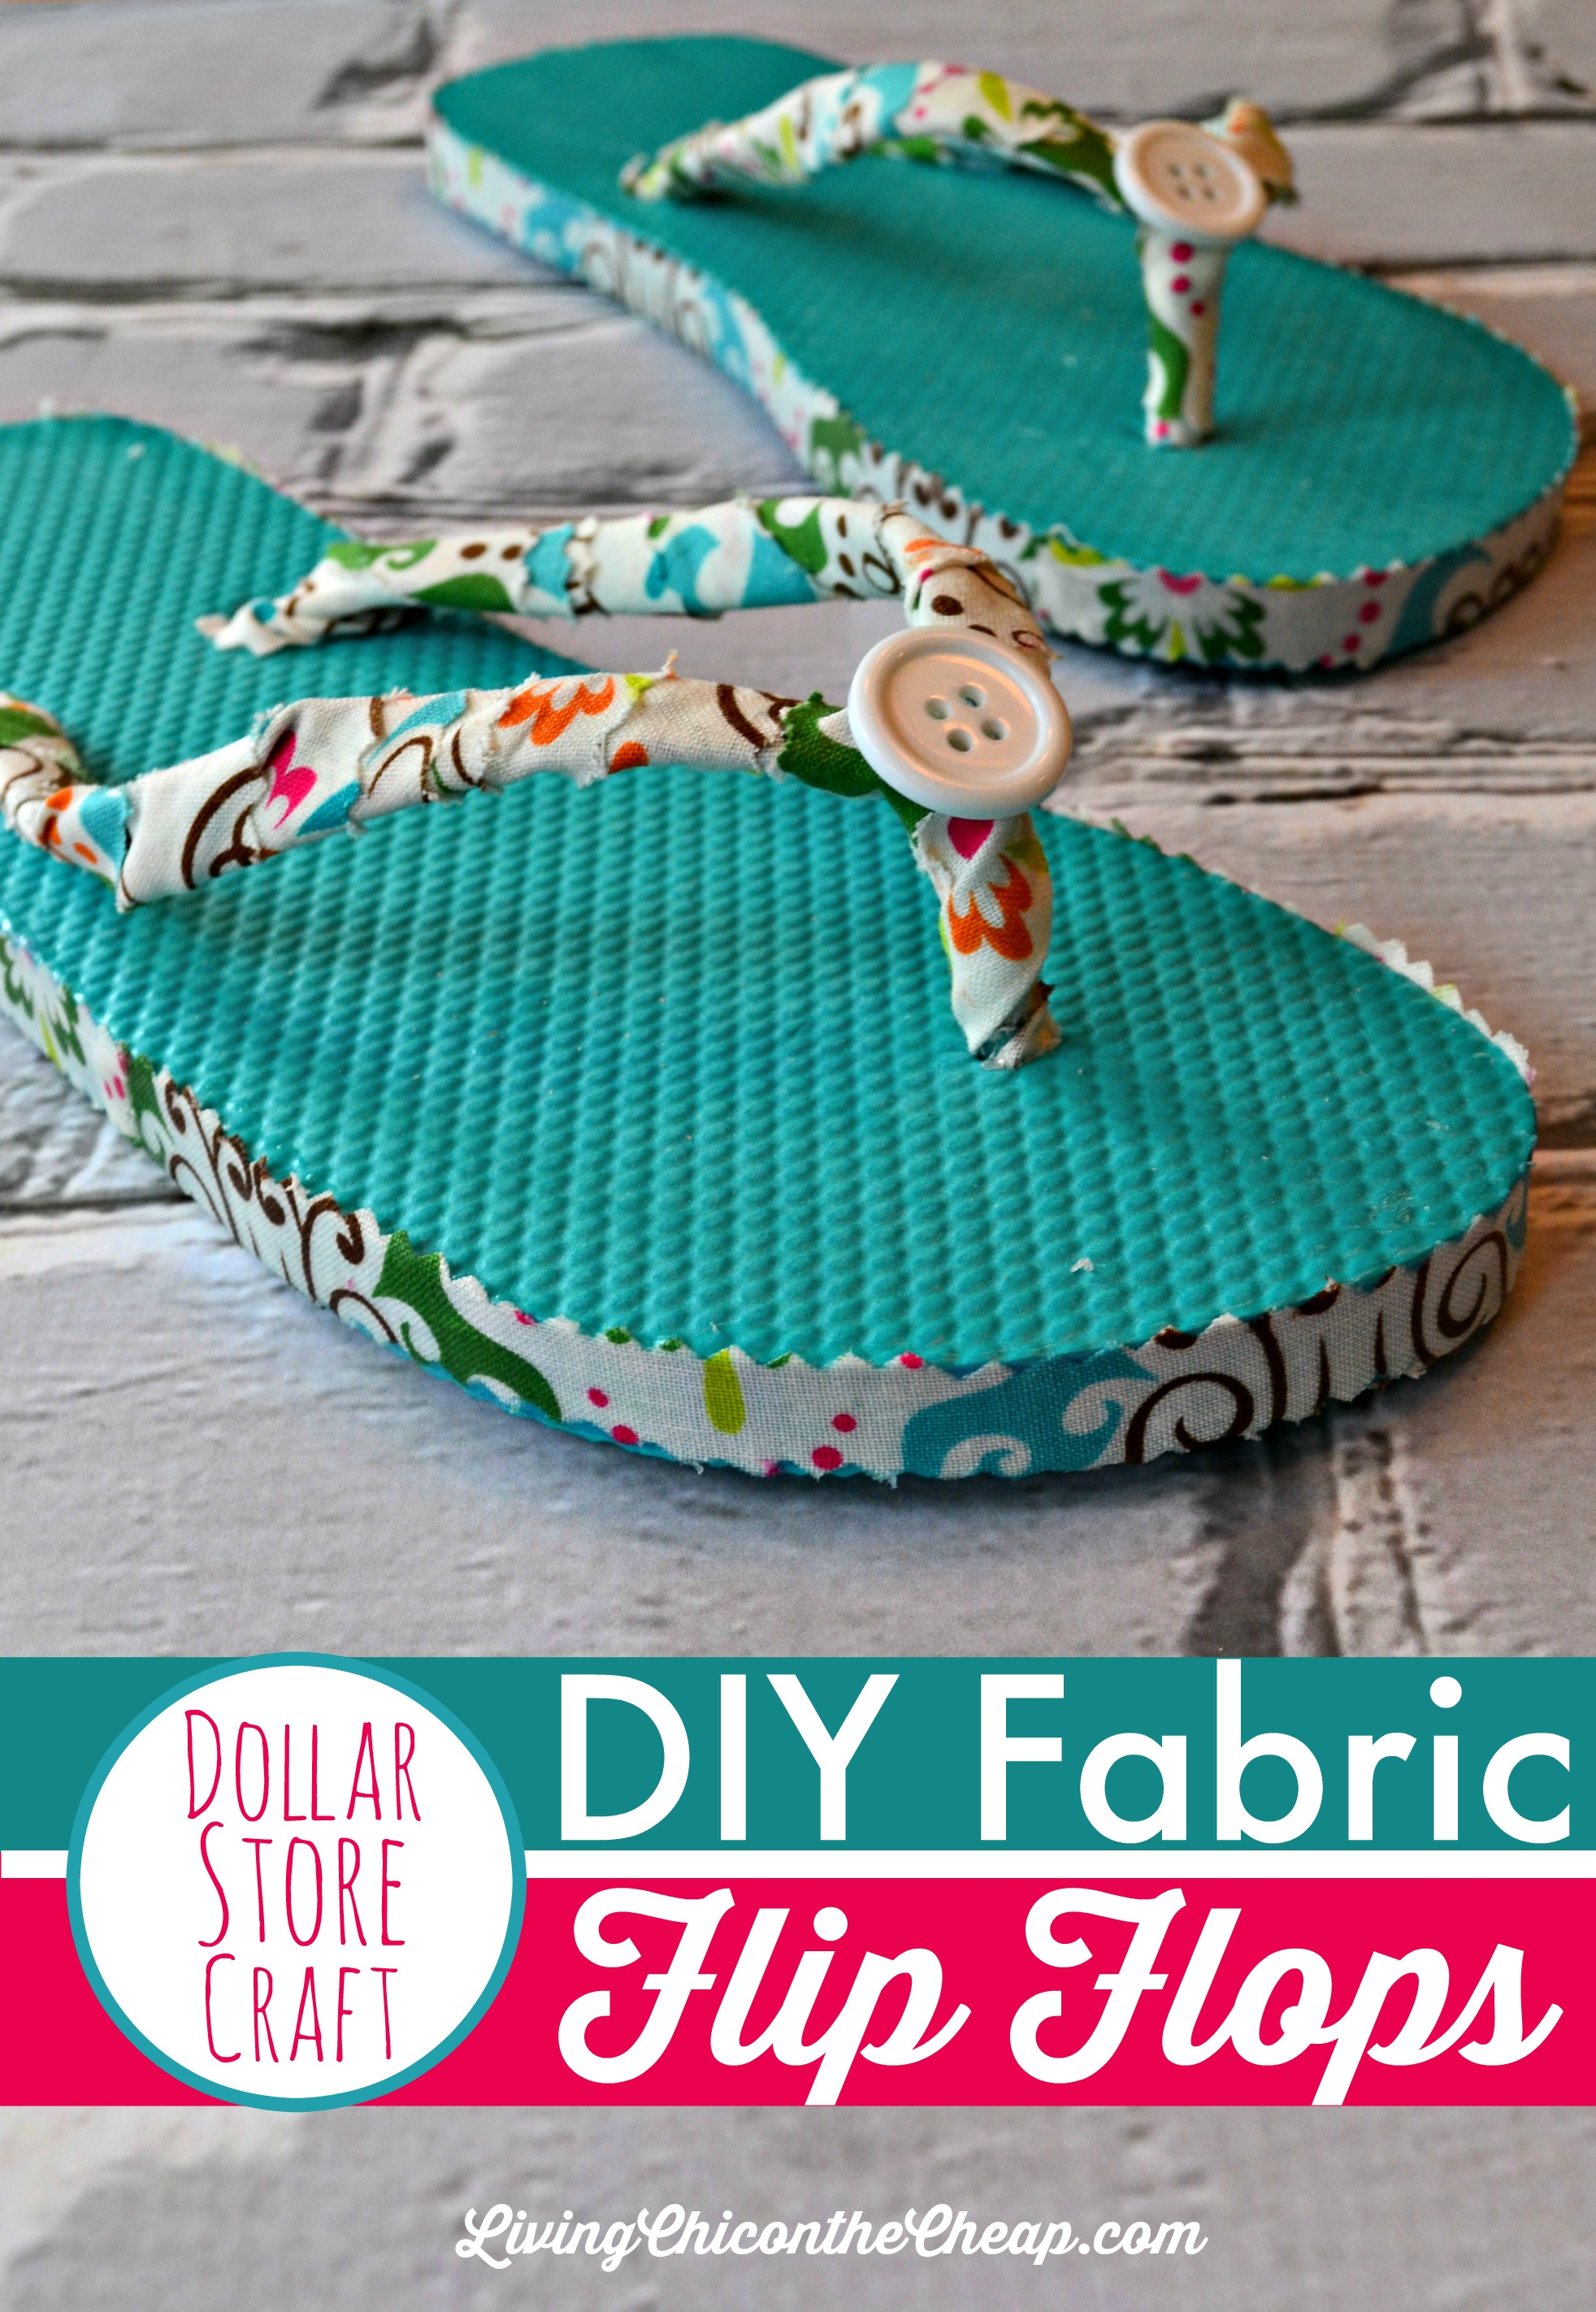 fdbfe0b2766464 DIY Fabric Flip Flops (No Sewing Required)